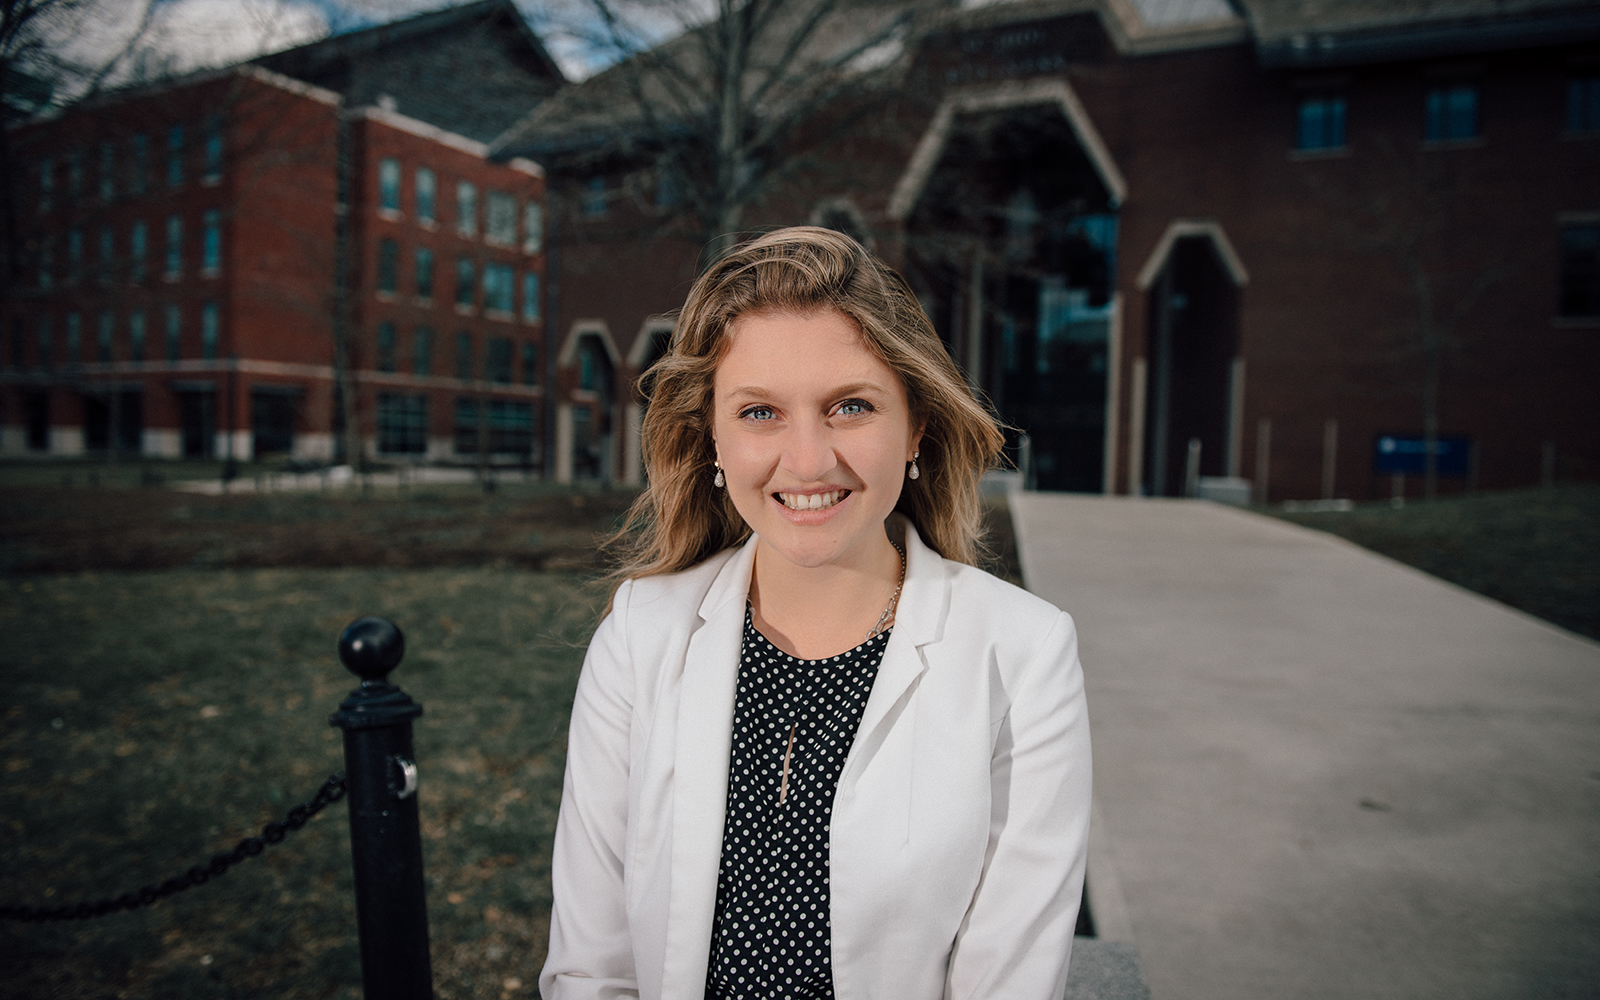 Margo Bailey, a senior honors student majoring in marketing, is the sole recipient of the competitive Fulbright Scholarship to earn a master's degree in management at IE Business School in Madrid, Spain. (Nathan Oldham/UConn School of Business)